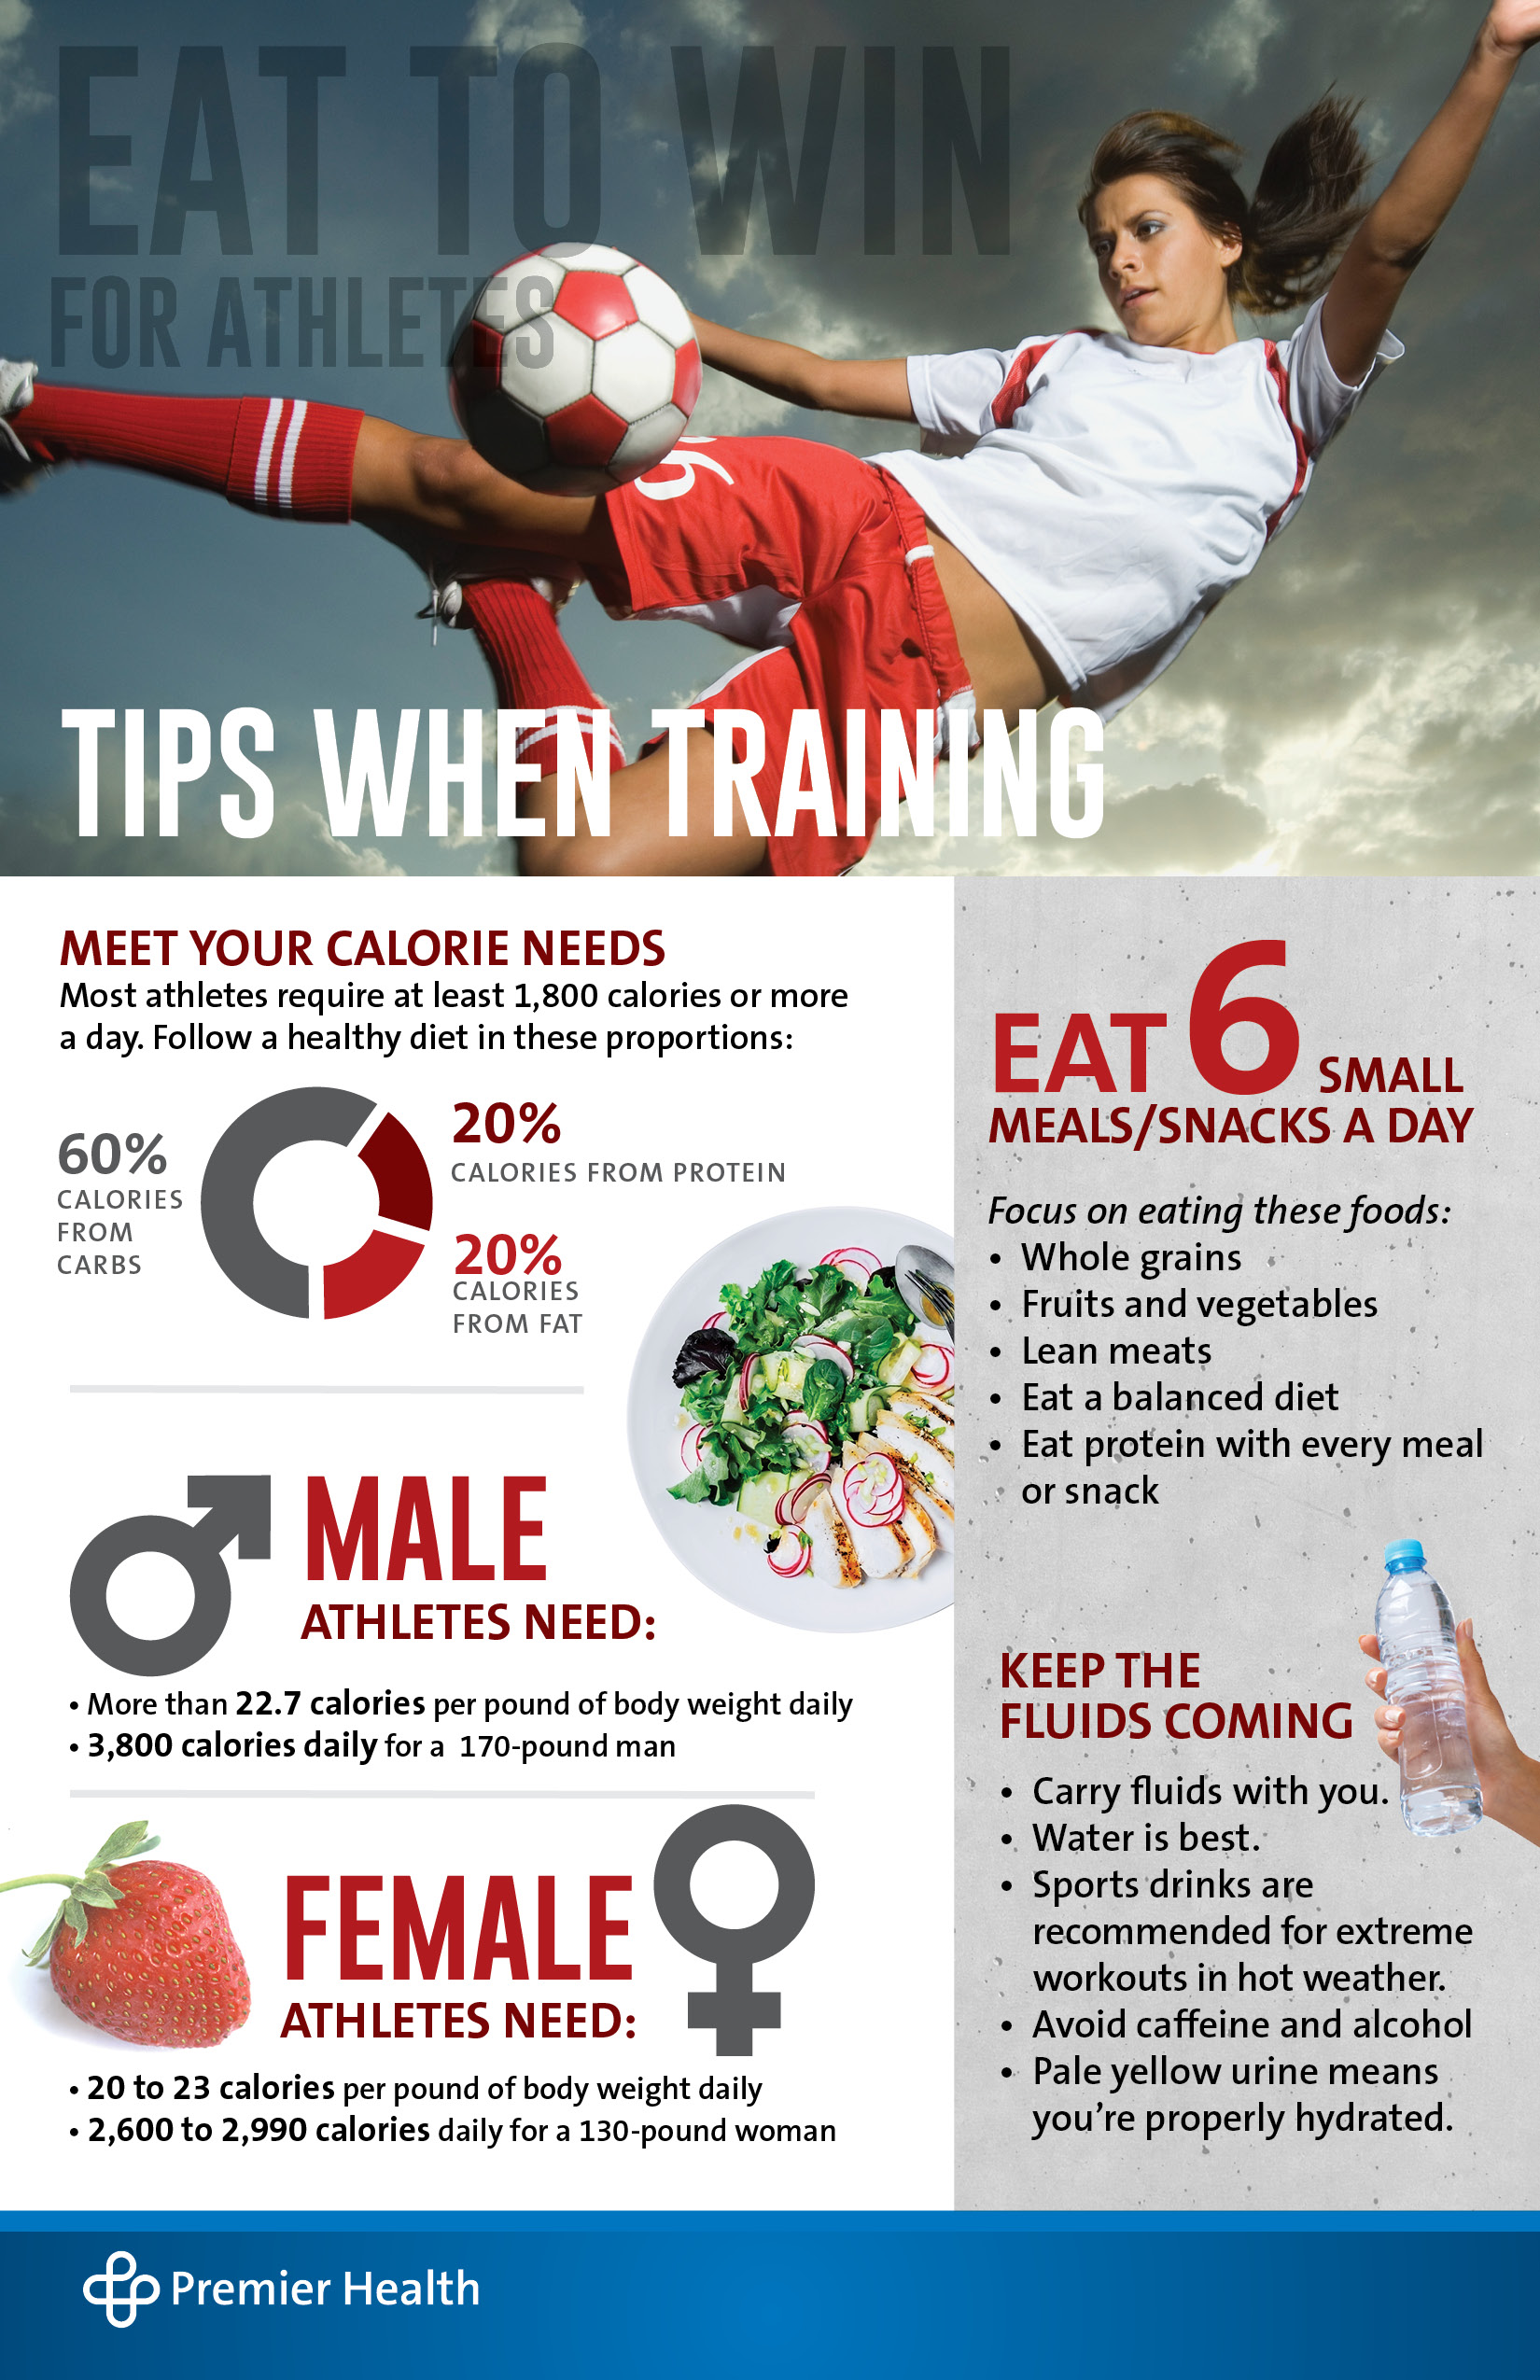 Eat to Win - Tips When Training